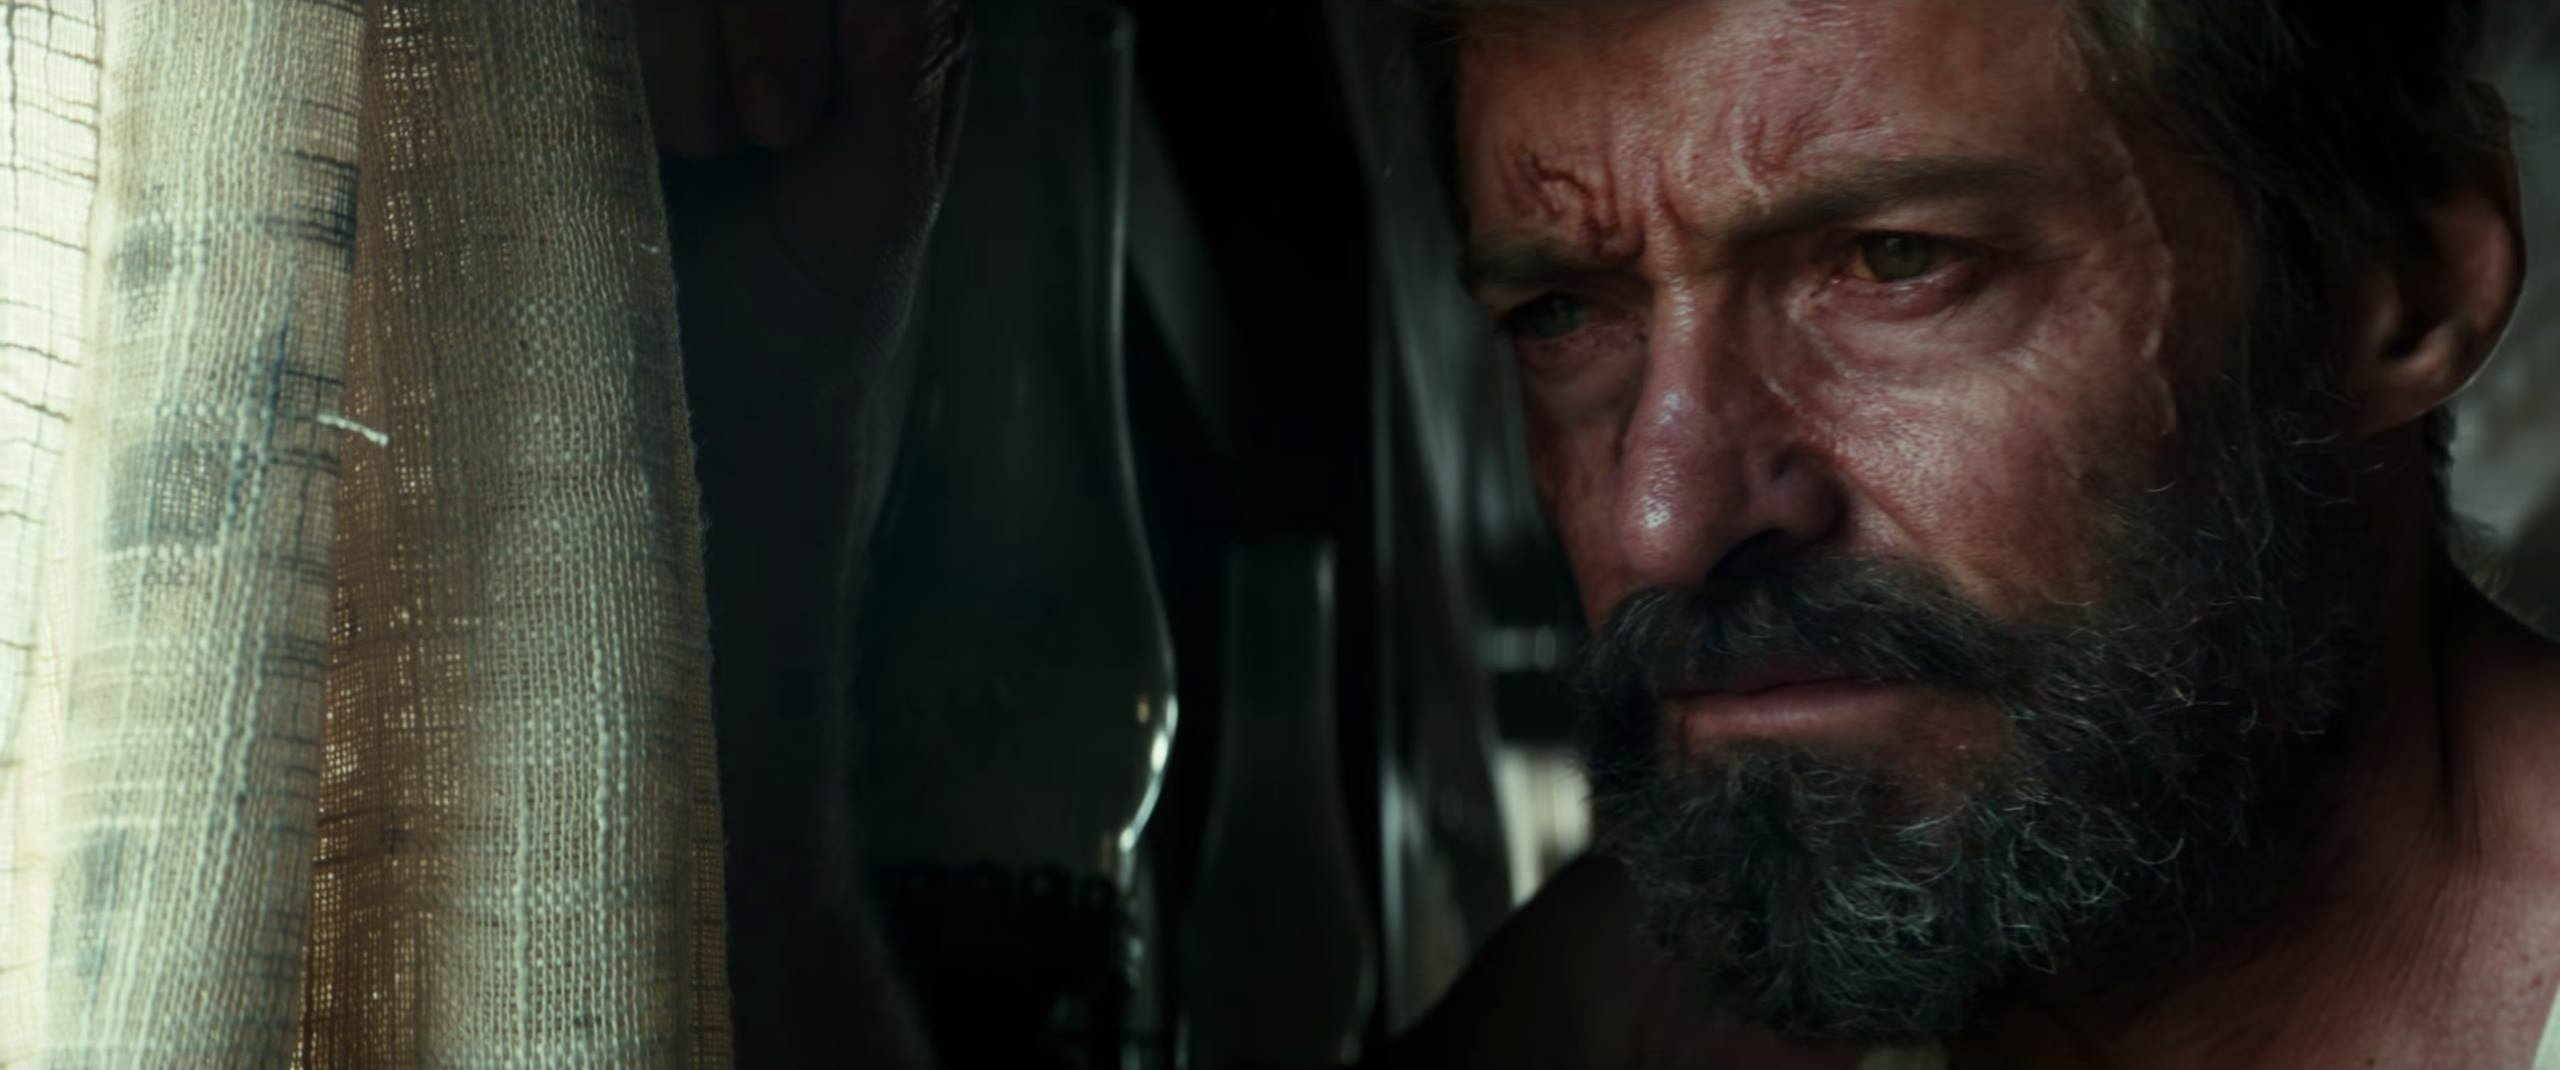 What makes 'Logan' such an engrossing movie ?